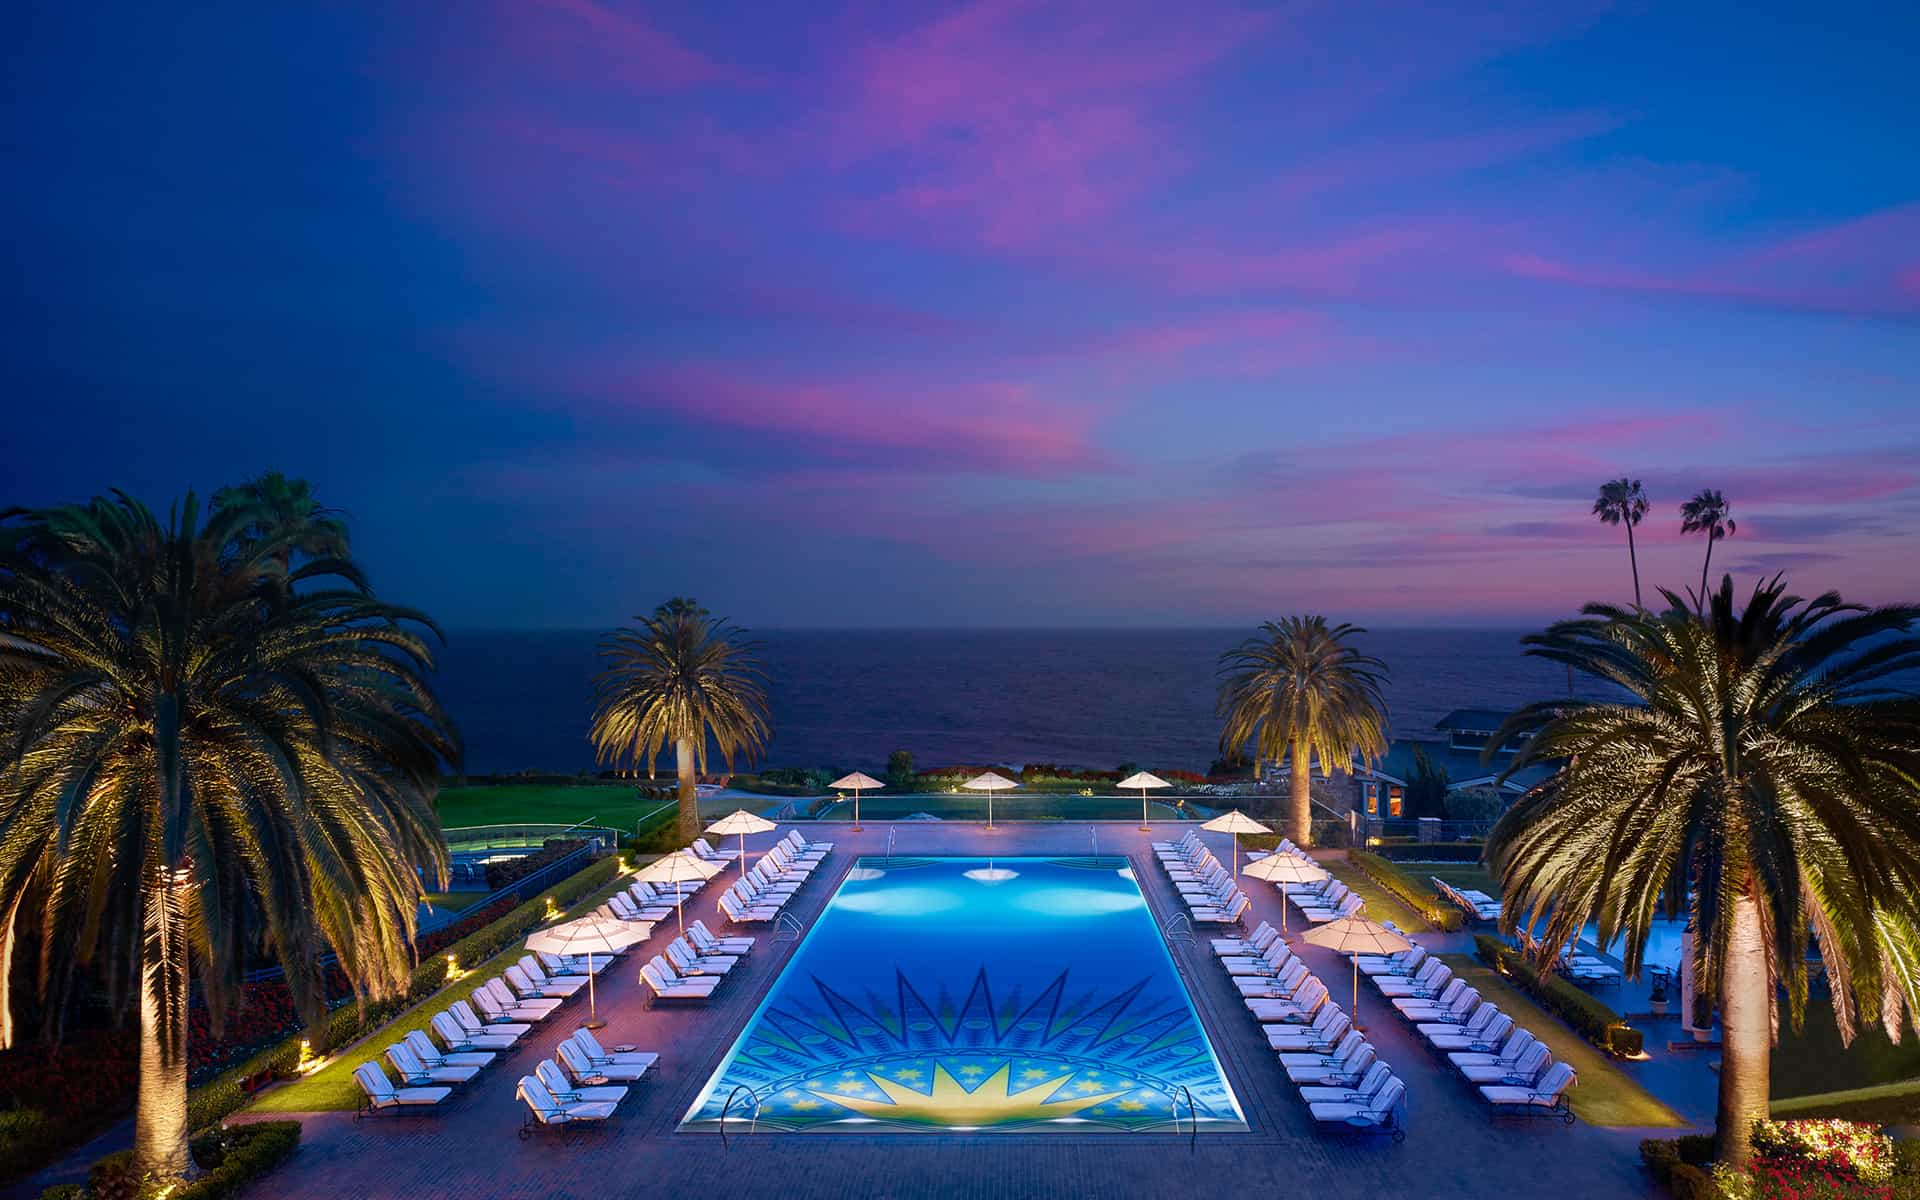 Luxury Laguna Beach Hotel Images Gallery | Montage Laguna ...